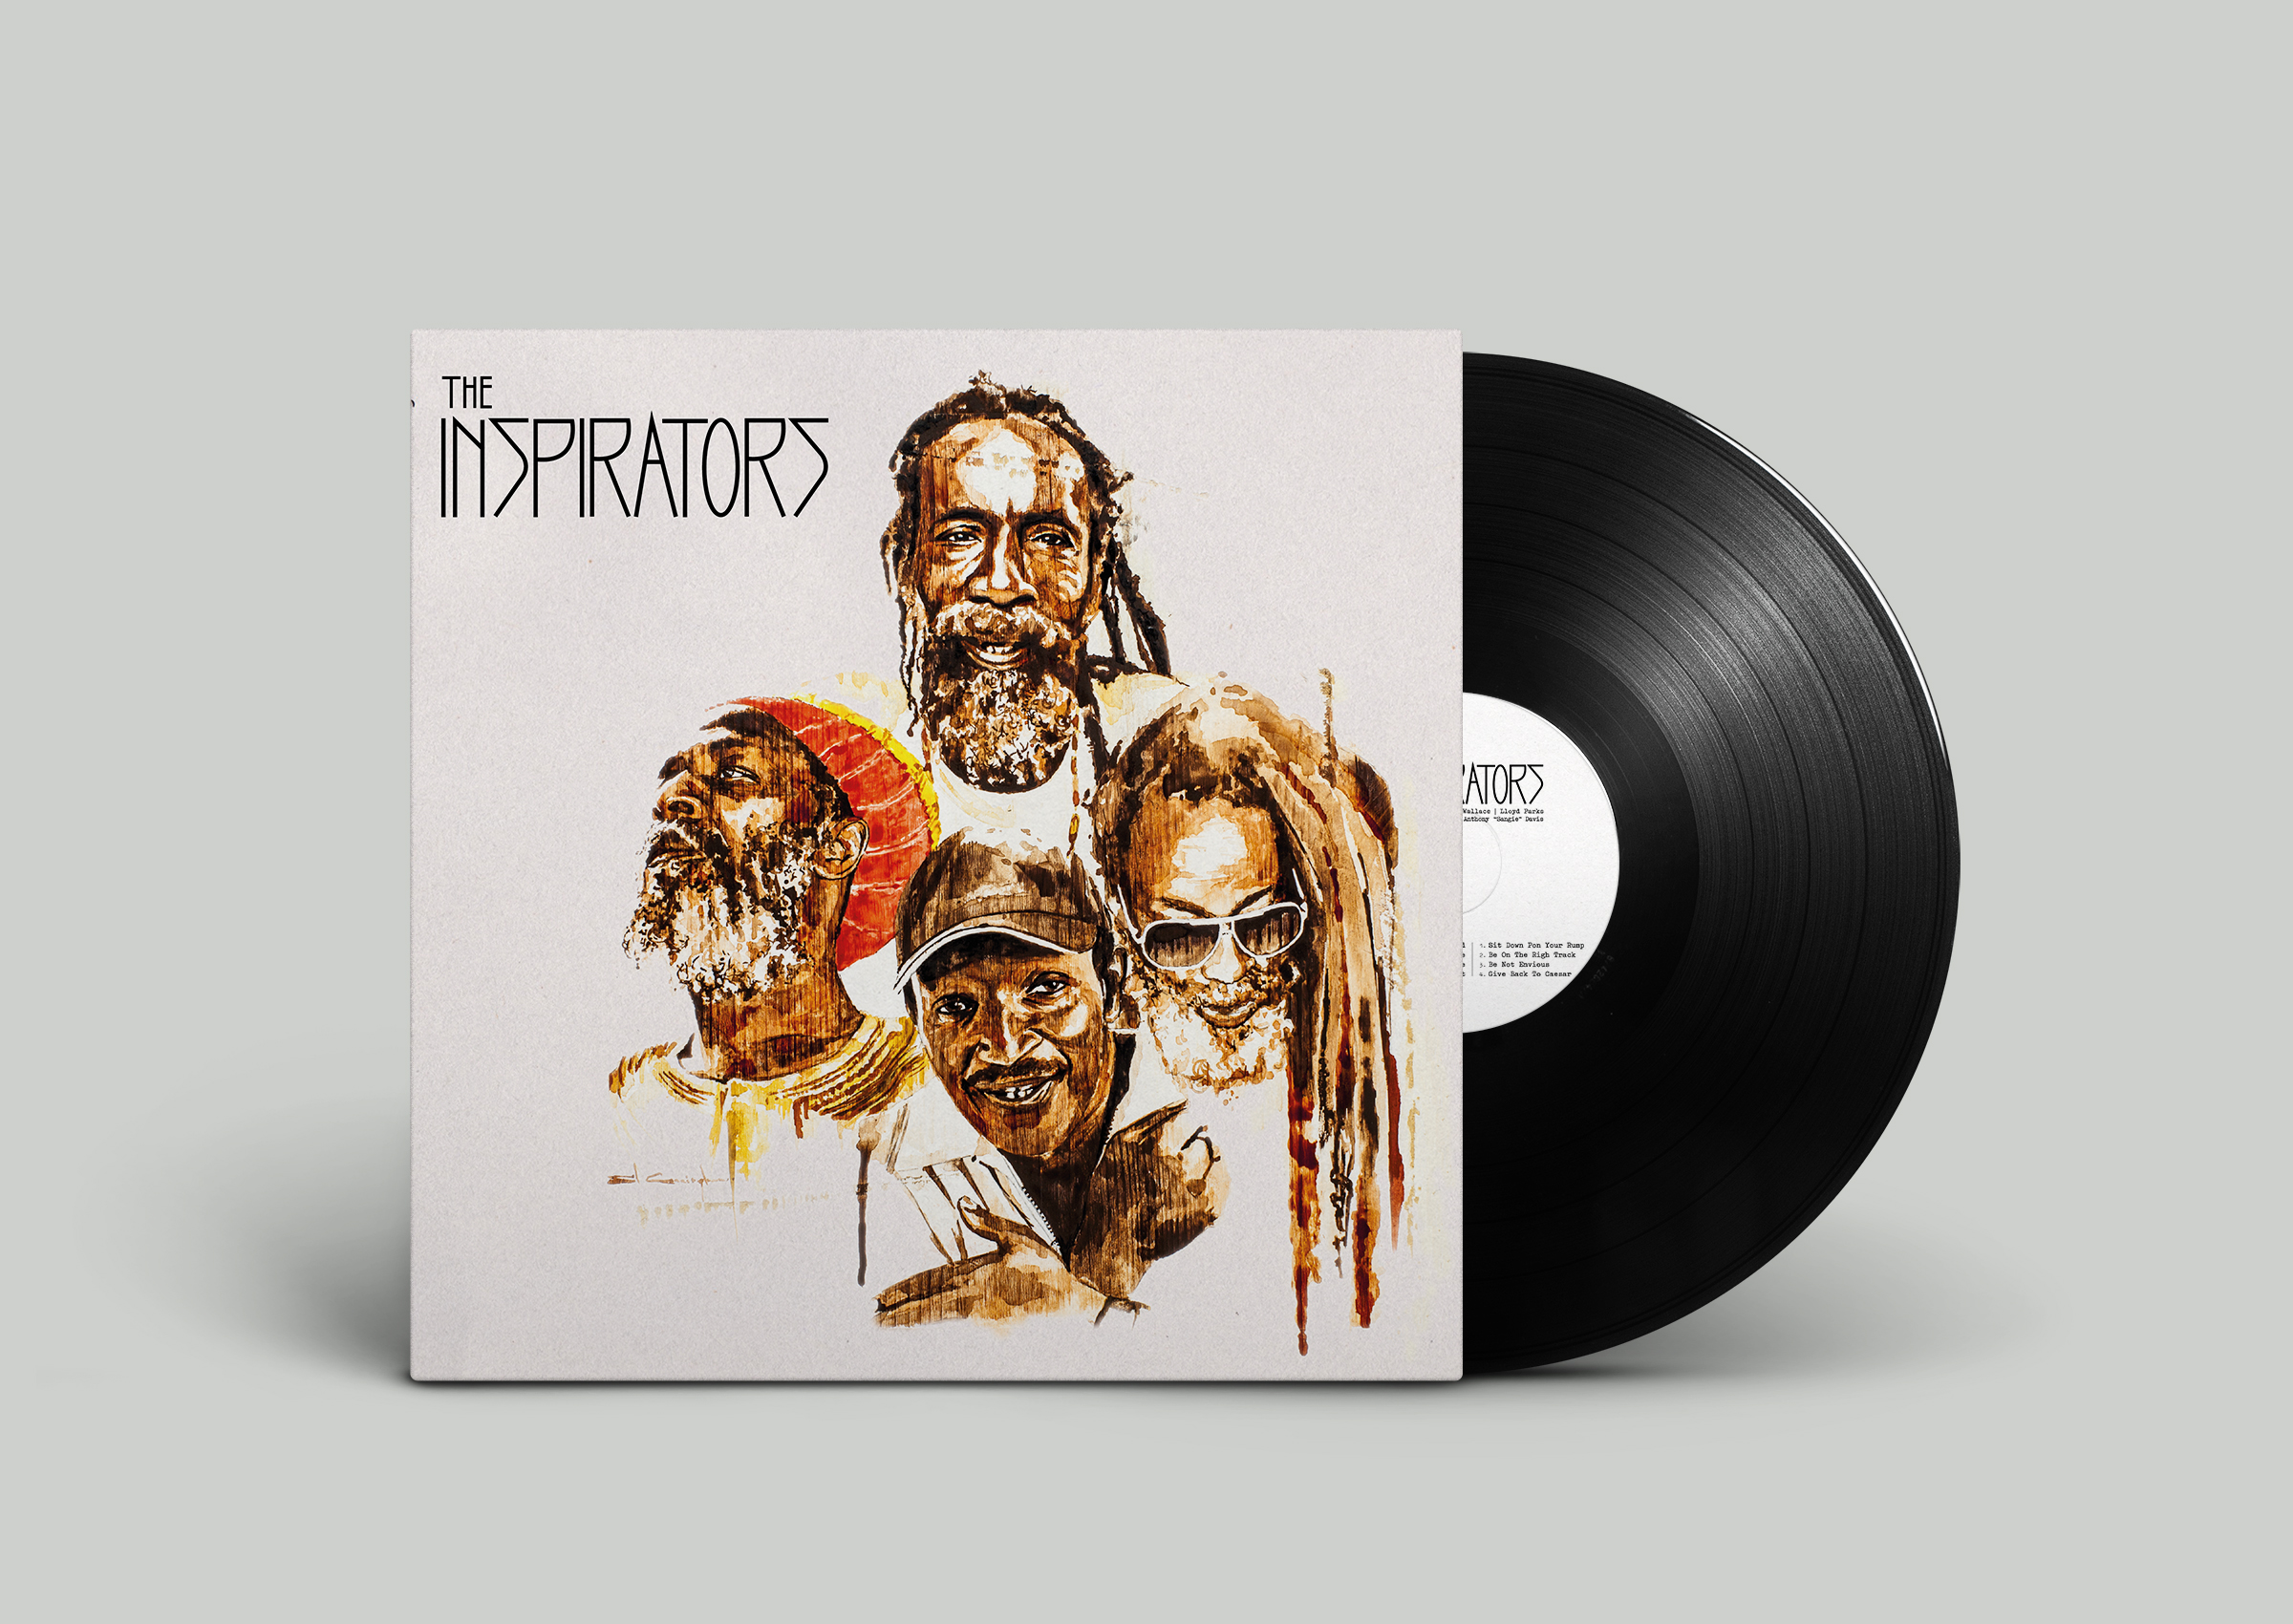 """LP cover and booklet design  The Inspirators, Leroy """"Horsemouth"""" Wallace, Lloyd Parks, Earl """"Chinna"""" Smith,Anthony """"Sangie"""" Davis, Mathias Liengme  Illustrations : Sil Cunningham  (U.K)  Graphic design : Liza Mazur  Label :  Fruits Records  (CH)  Switzerland, Jamaica, U.K. 2015"""